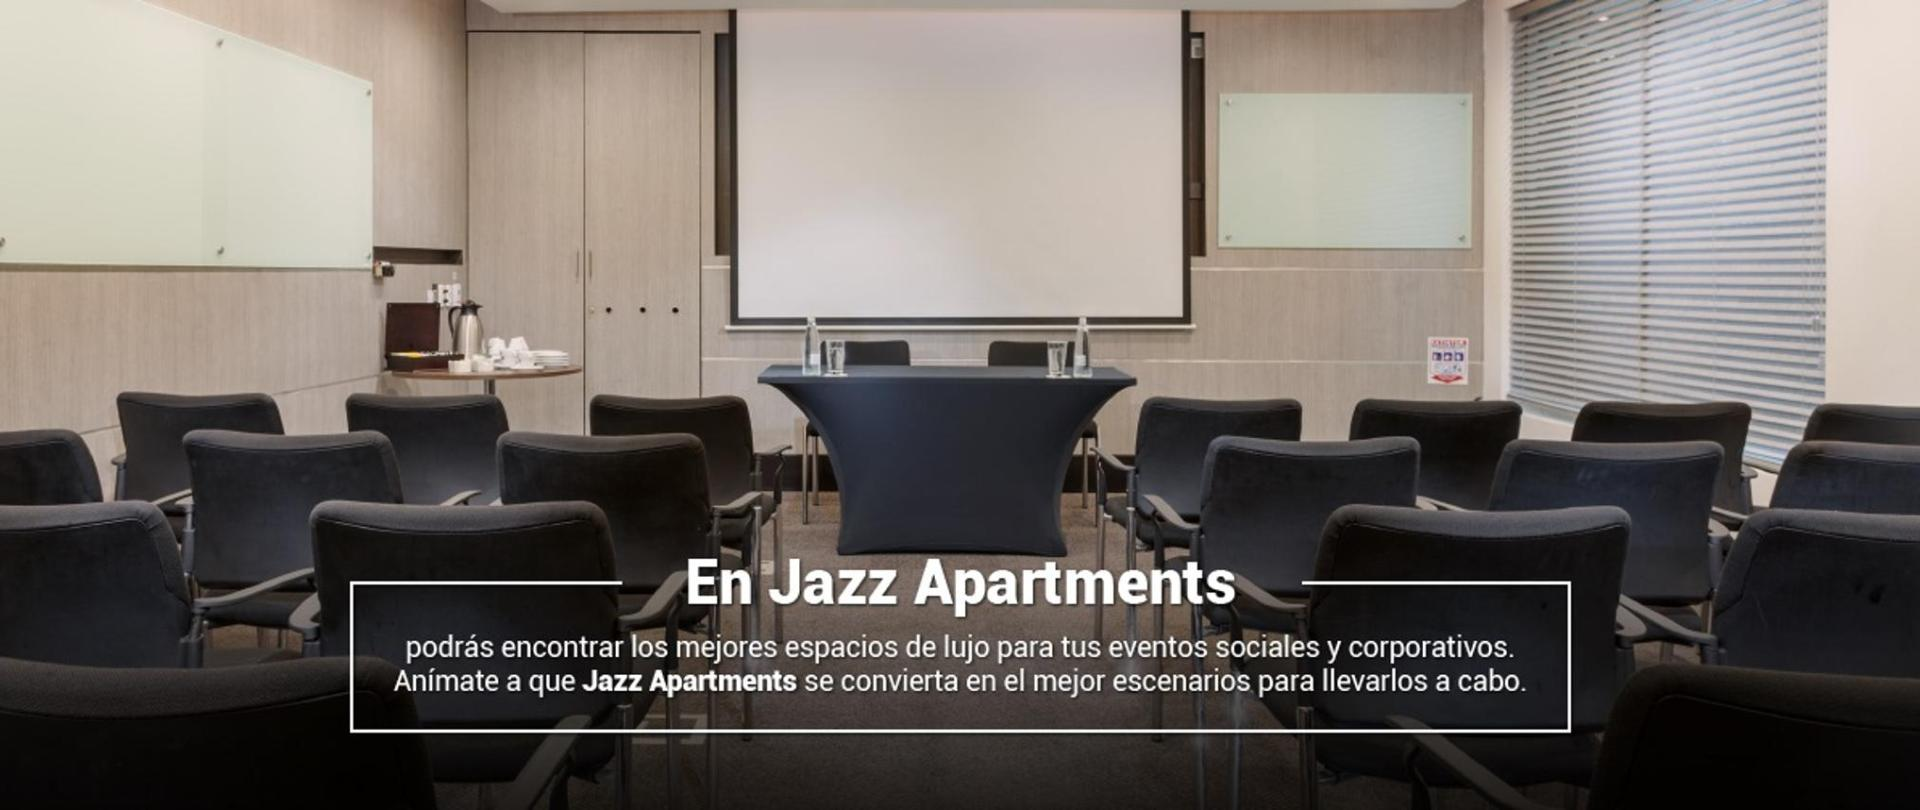 www.jazzapartments.com-salas-eventos.jpg